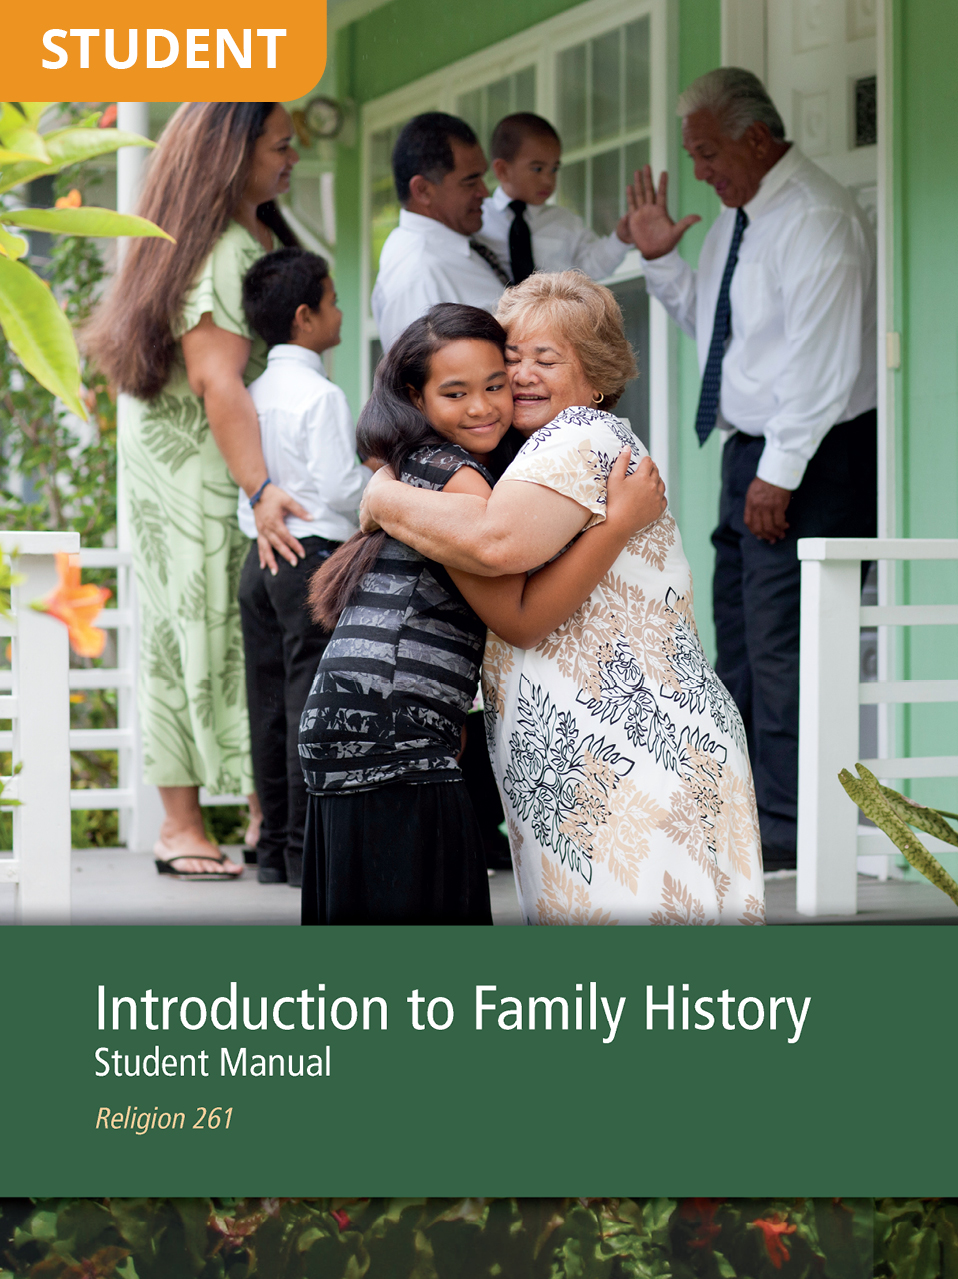 Introduction to Family History Student Manual (Rel 261)